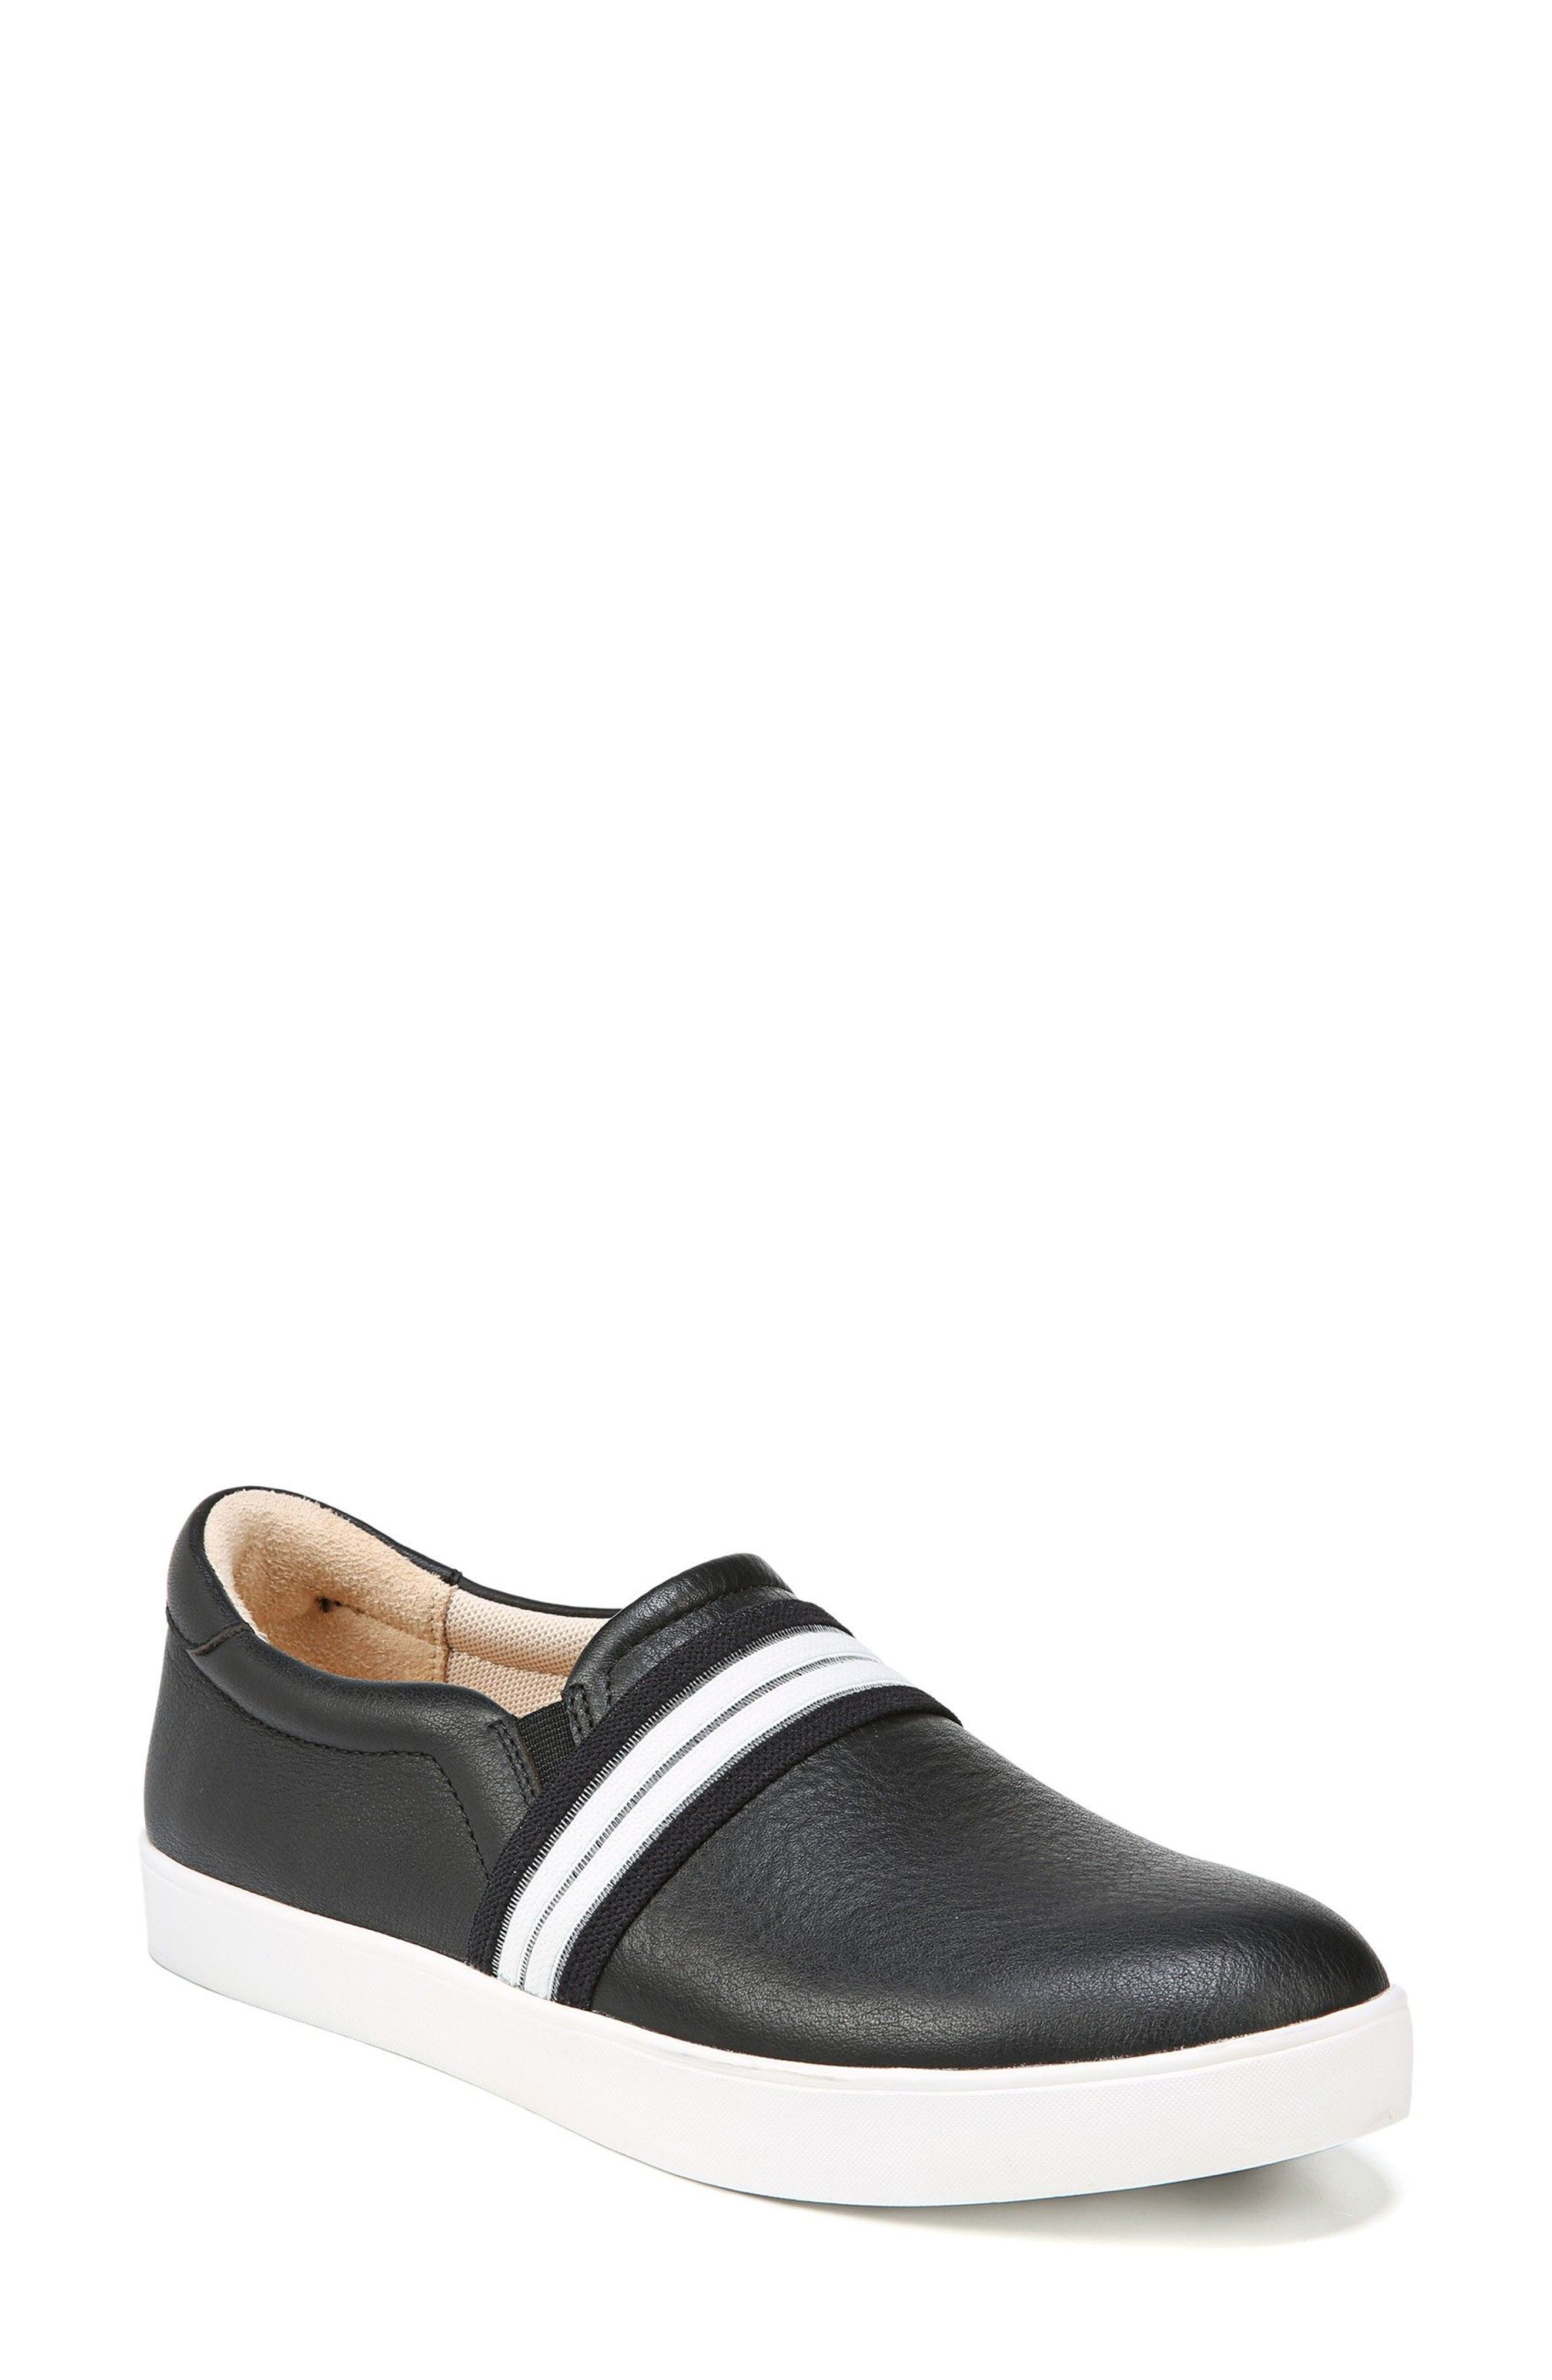 DR. SCHOLL'S, Scout Slip-On Sneaker, Main thumbnail 1, color, BLACK LEATHER 2